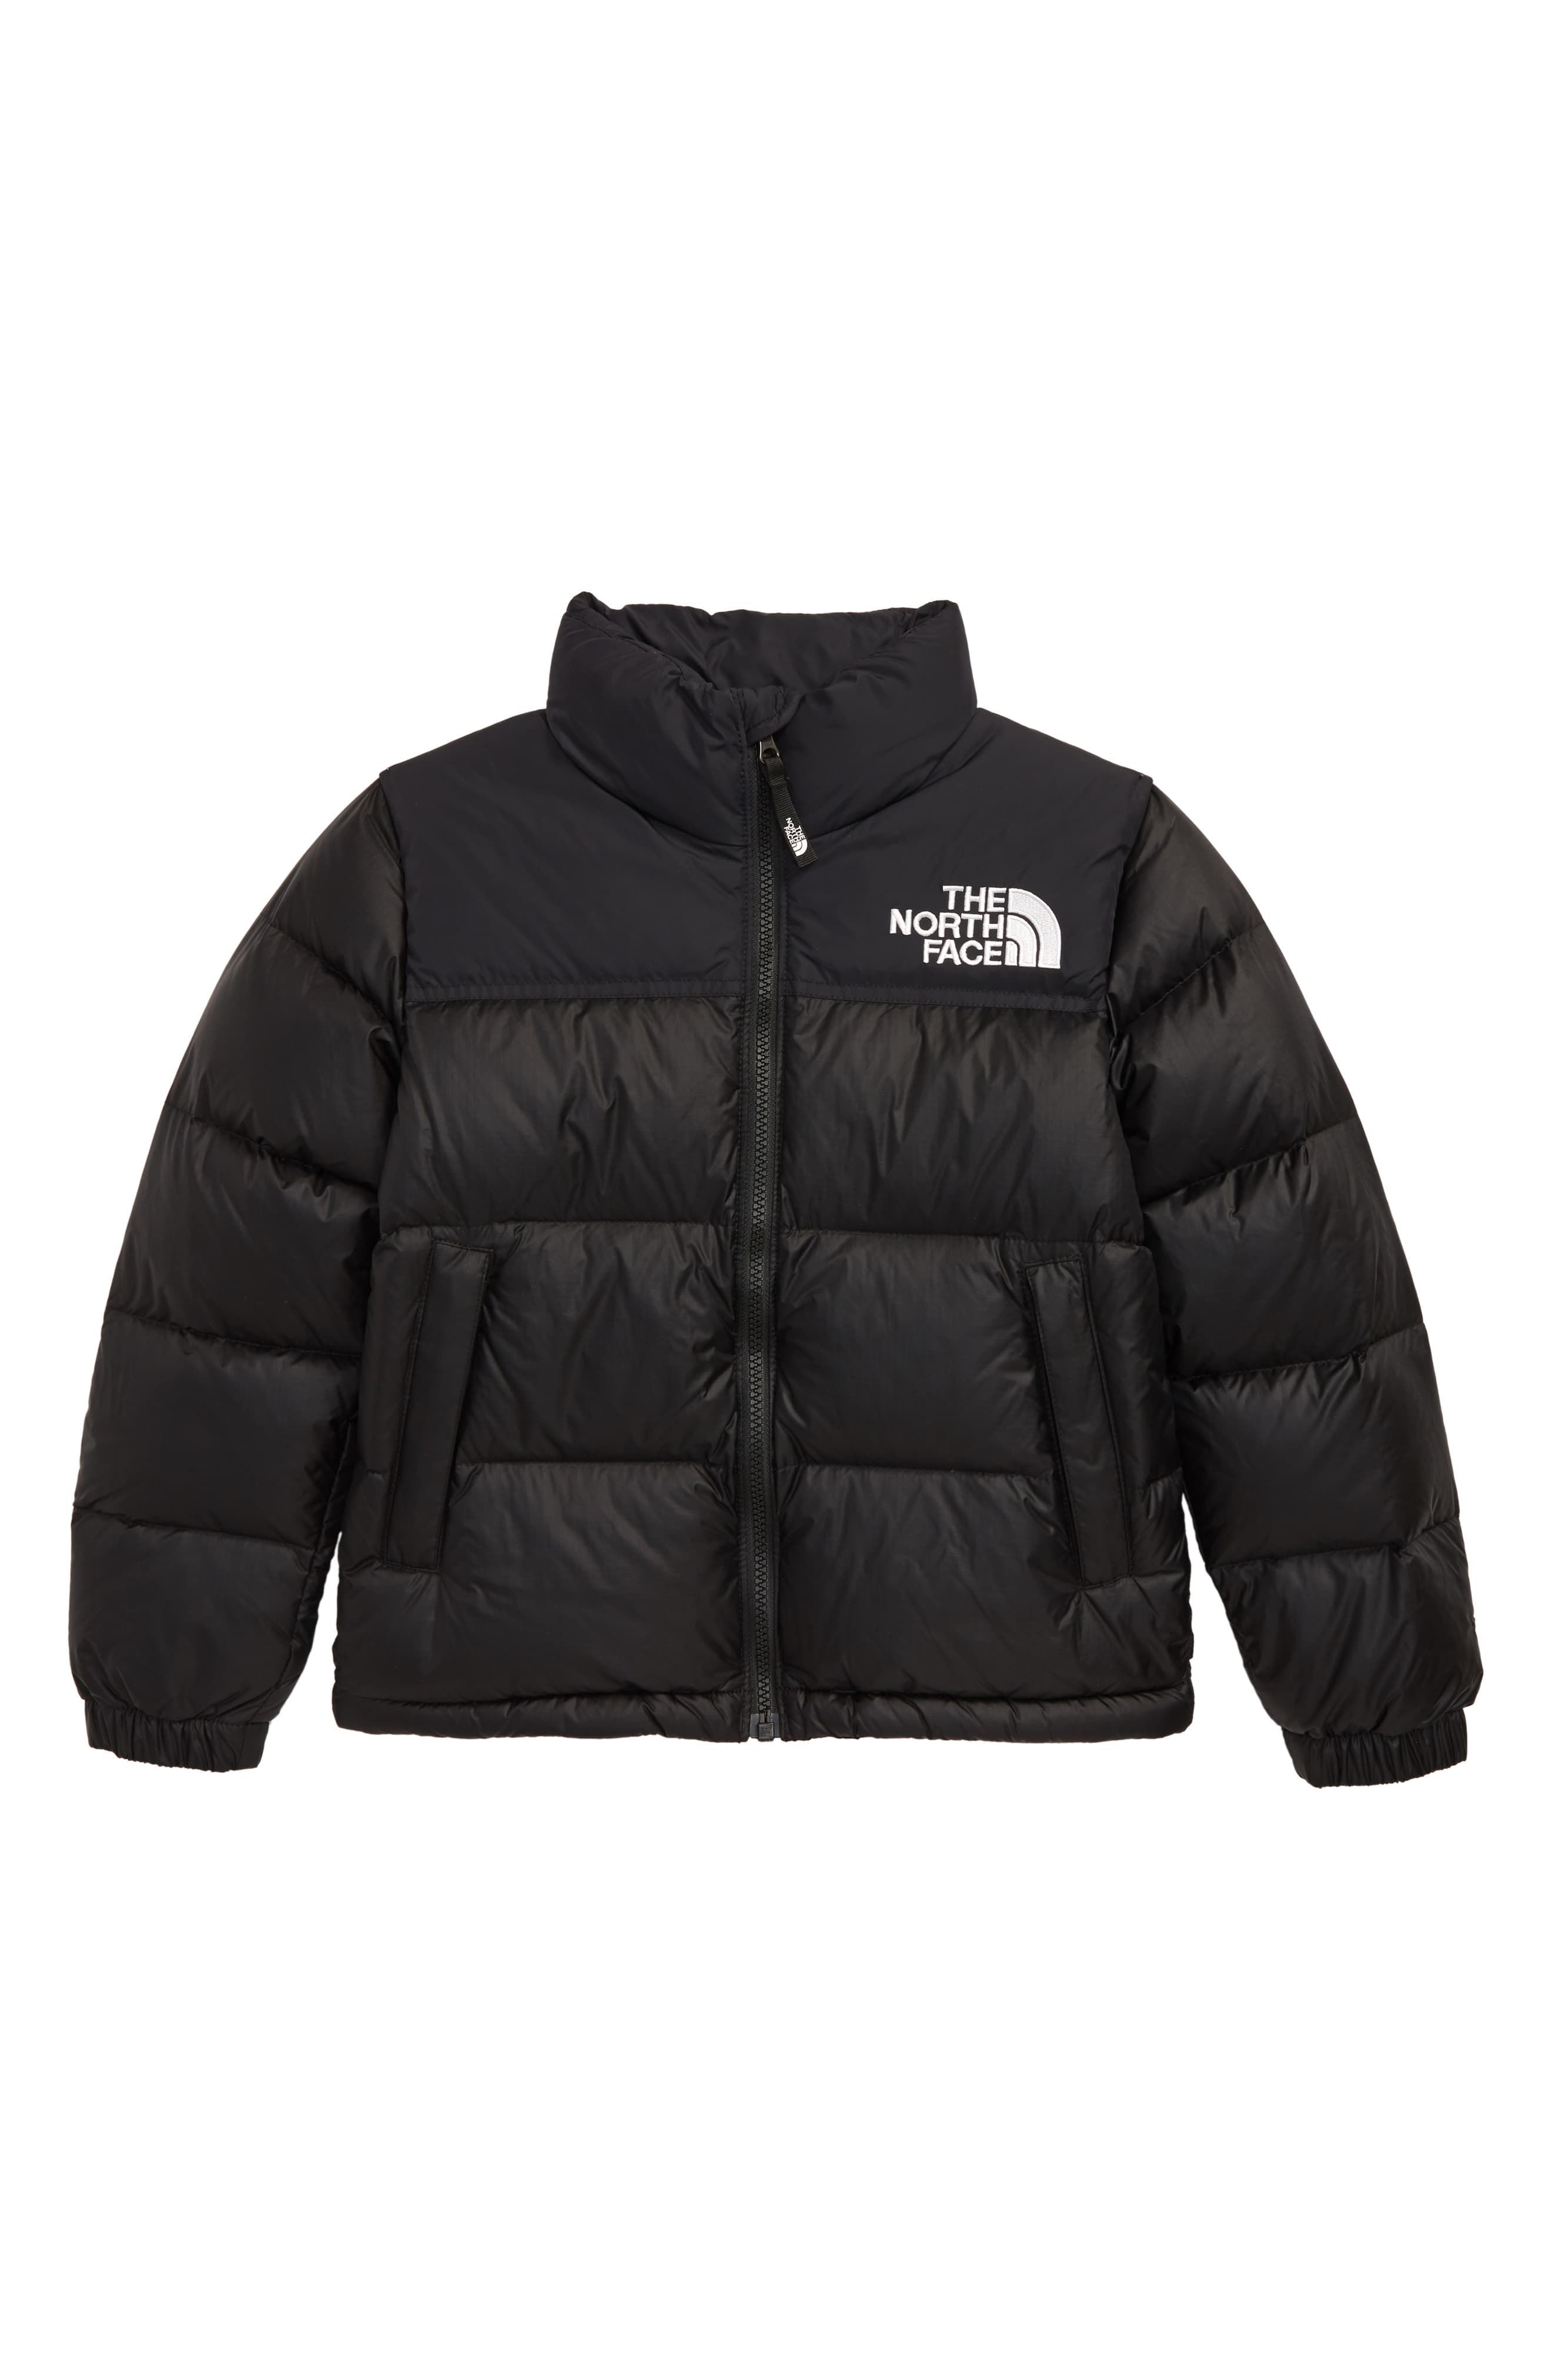 The North Face Nuptse 1996 700 Fill Power Down Jacket Big Boy Nordstrom In 2021 Black North Face Jacket North Face Kids North Face Nuptse [ 4048 x 2640 Pixel ]